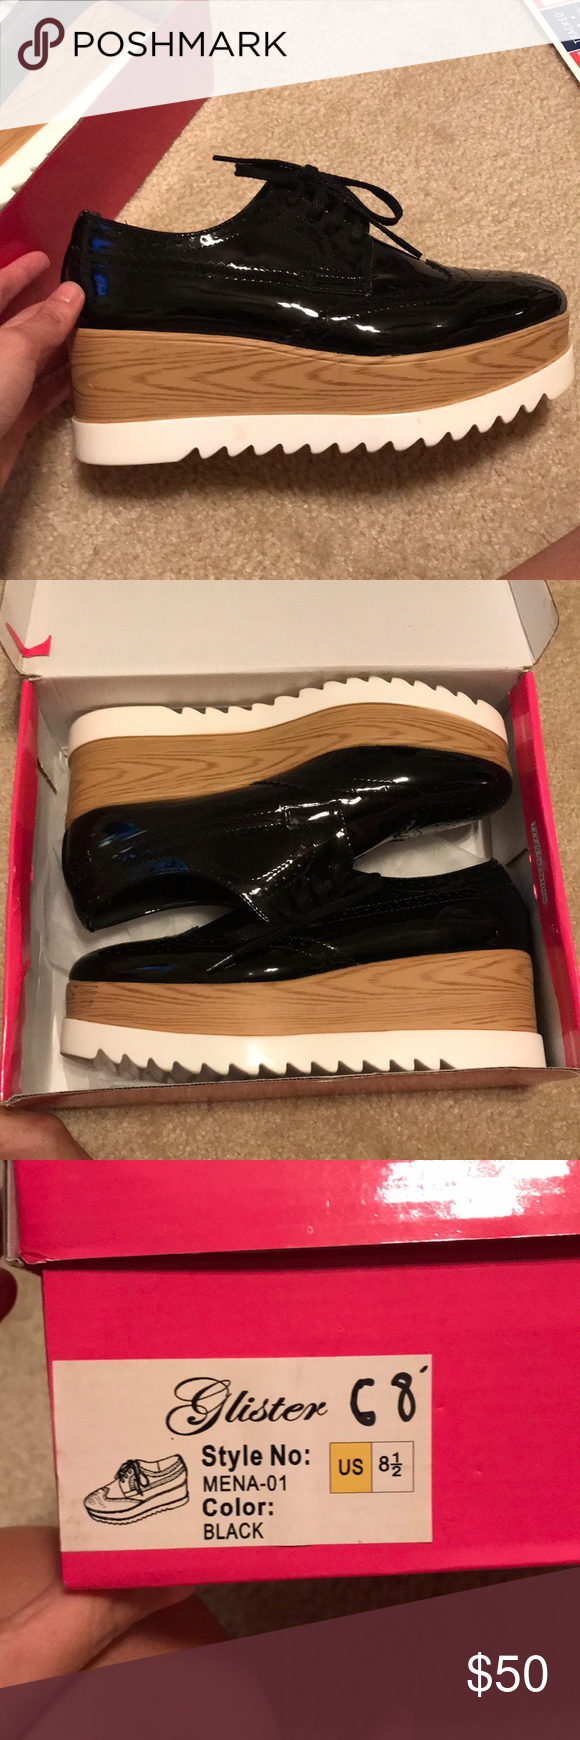 a0b79772df23 New Glister Platform Sneaker(sim Stella McCartney) Like New Glister  Platform Sneakers! They are very similar to the Stella McCartney ones that  are over ...